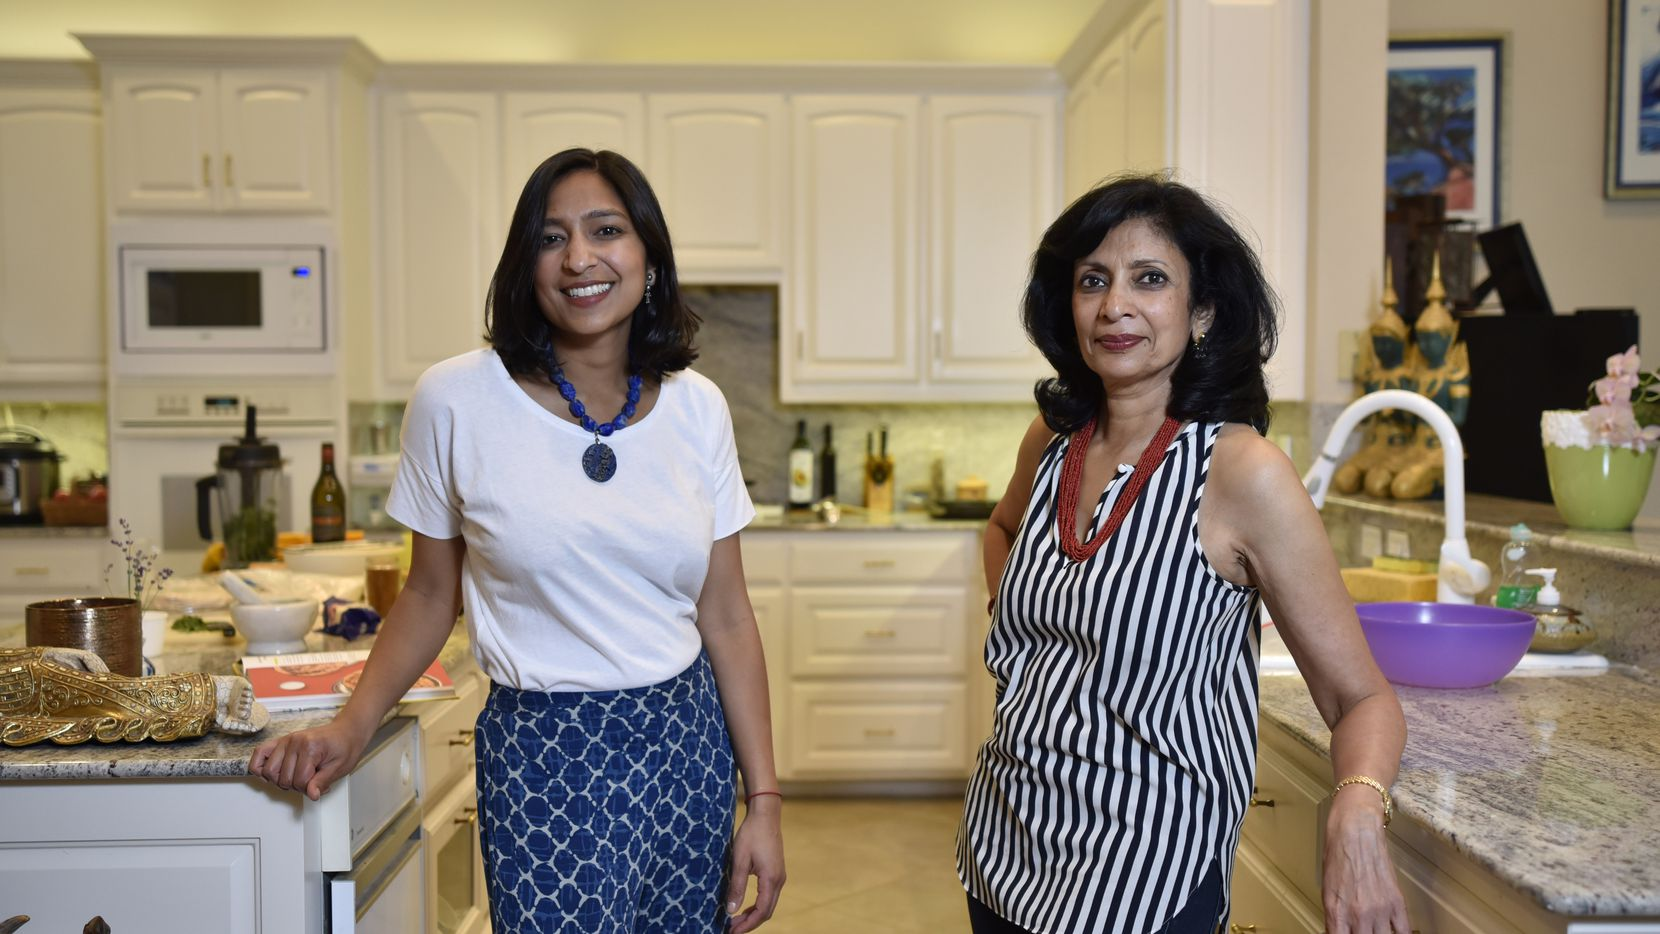 Food writer and Dallas native Priya Krishna, left, announced on Aug. 6, 2020 she will no longer contribute to the company's popular YouTube videos because of unequal pay. She's pictured here in 2019 with her mother Ritu Krishna at their family home in Dallas.